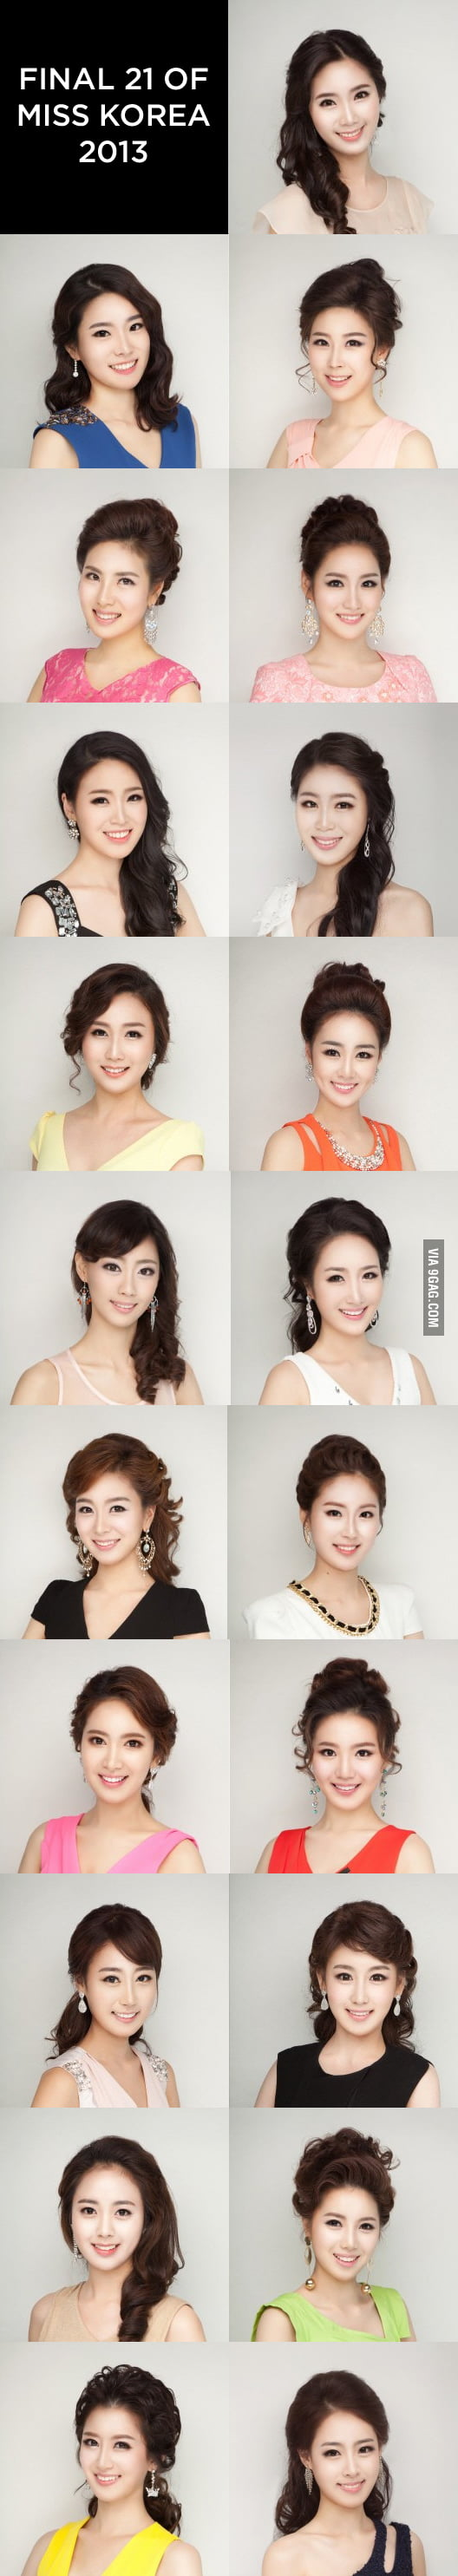 Final 21 of Miss Korea 2013